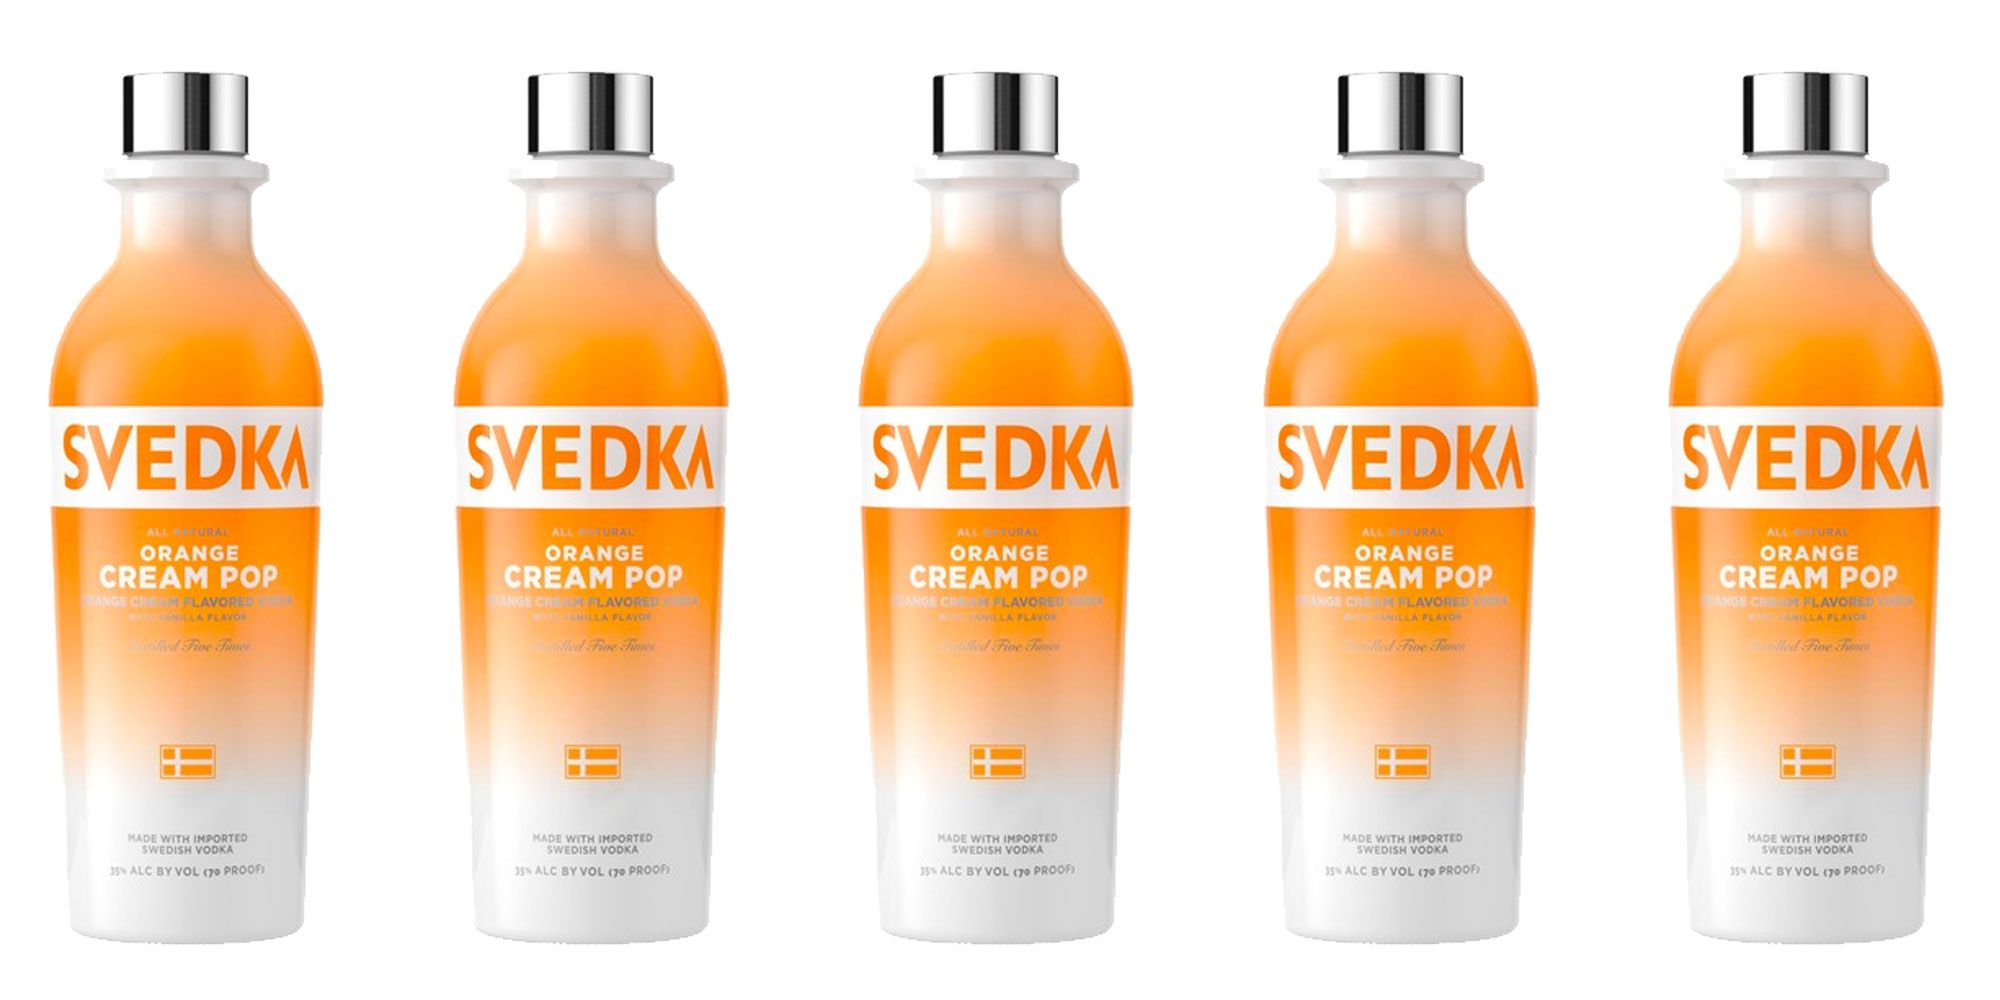 Orange Creamsicle Vodka Exists, So We're Never Drinking Boring Booze Again